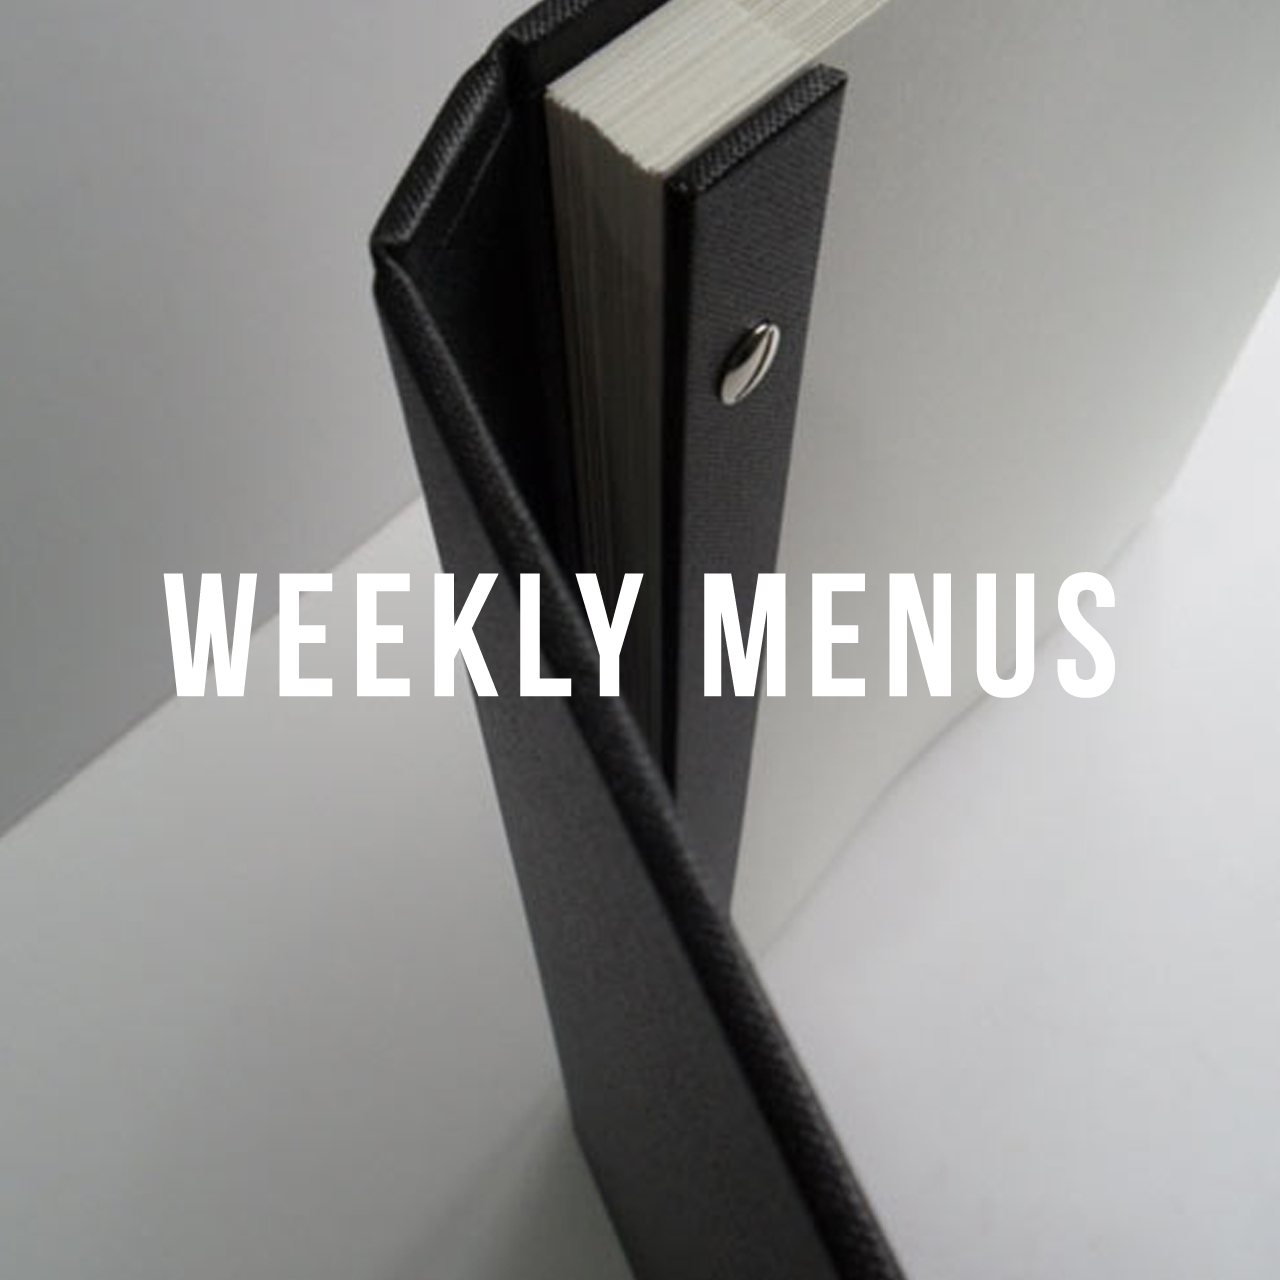 "W E E K L Y  M E N U S    We post a new, seasonally inspired menu each week with a different meal for Monday through Thursday. We rarely repeat a meal in a month so you don't get bored of the ""same ole-same ole"" dinner. Each weekend you can see our menu for the upcoming week so you can plan ahead and remove the stress from planning meals. Order four nights a week. Order just on Tuesday's after soccer practice. City Kitchen is about to make your weeknights so much smoother!"